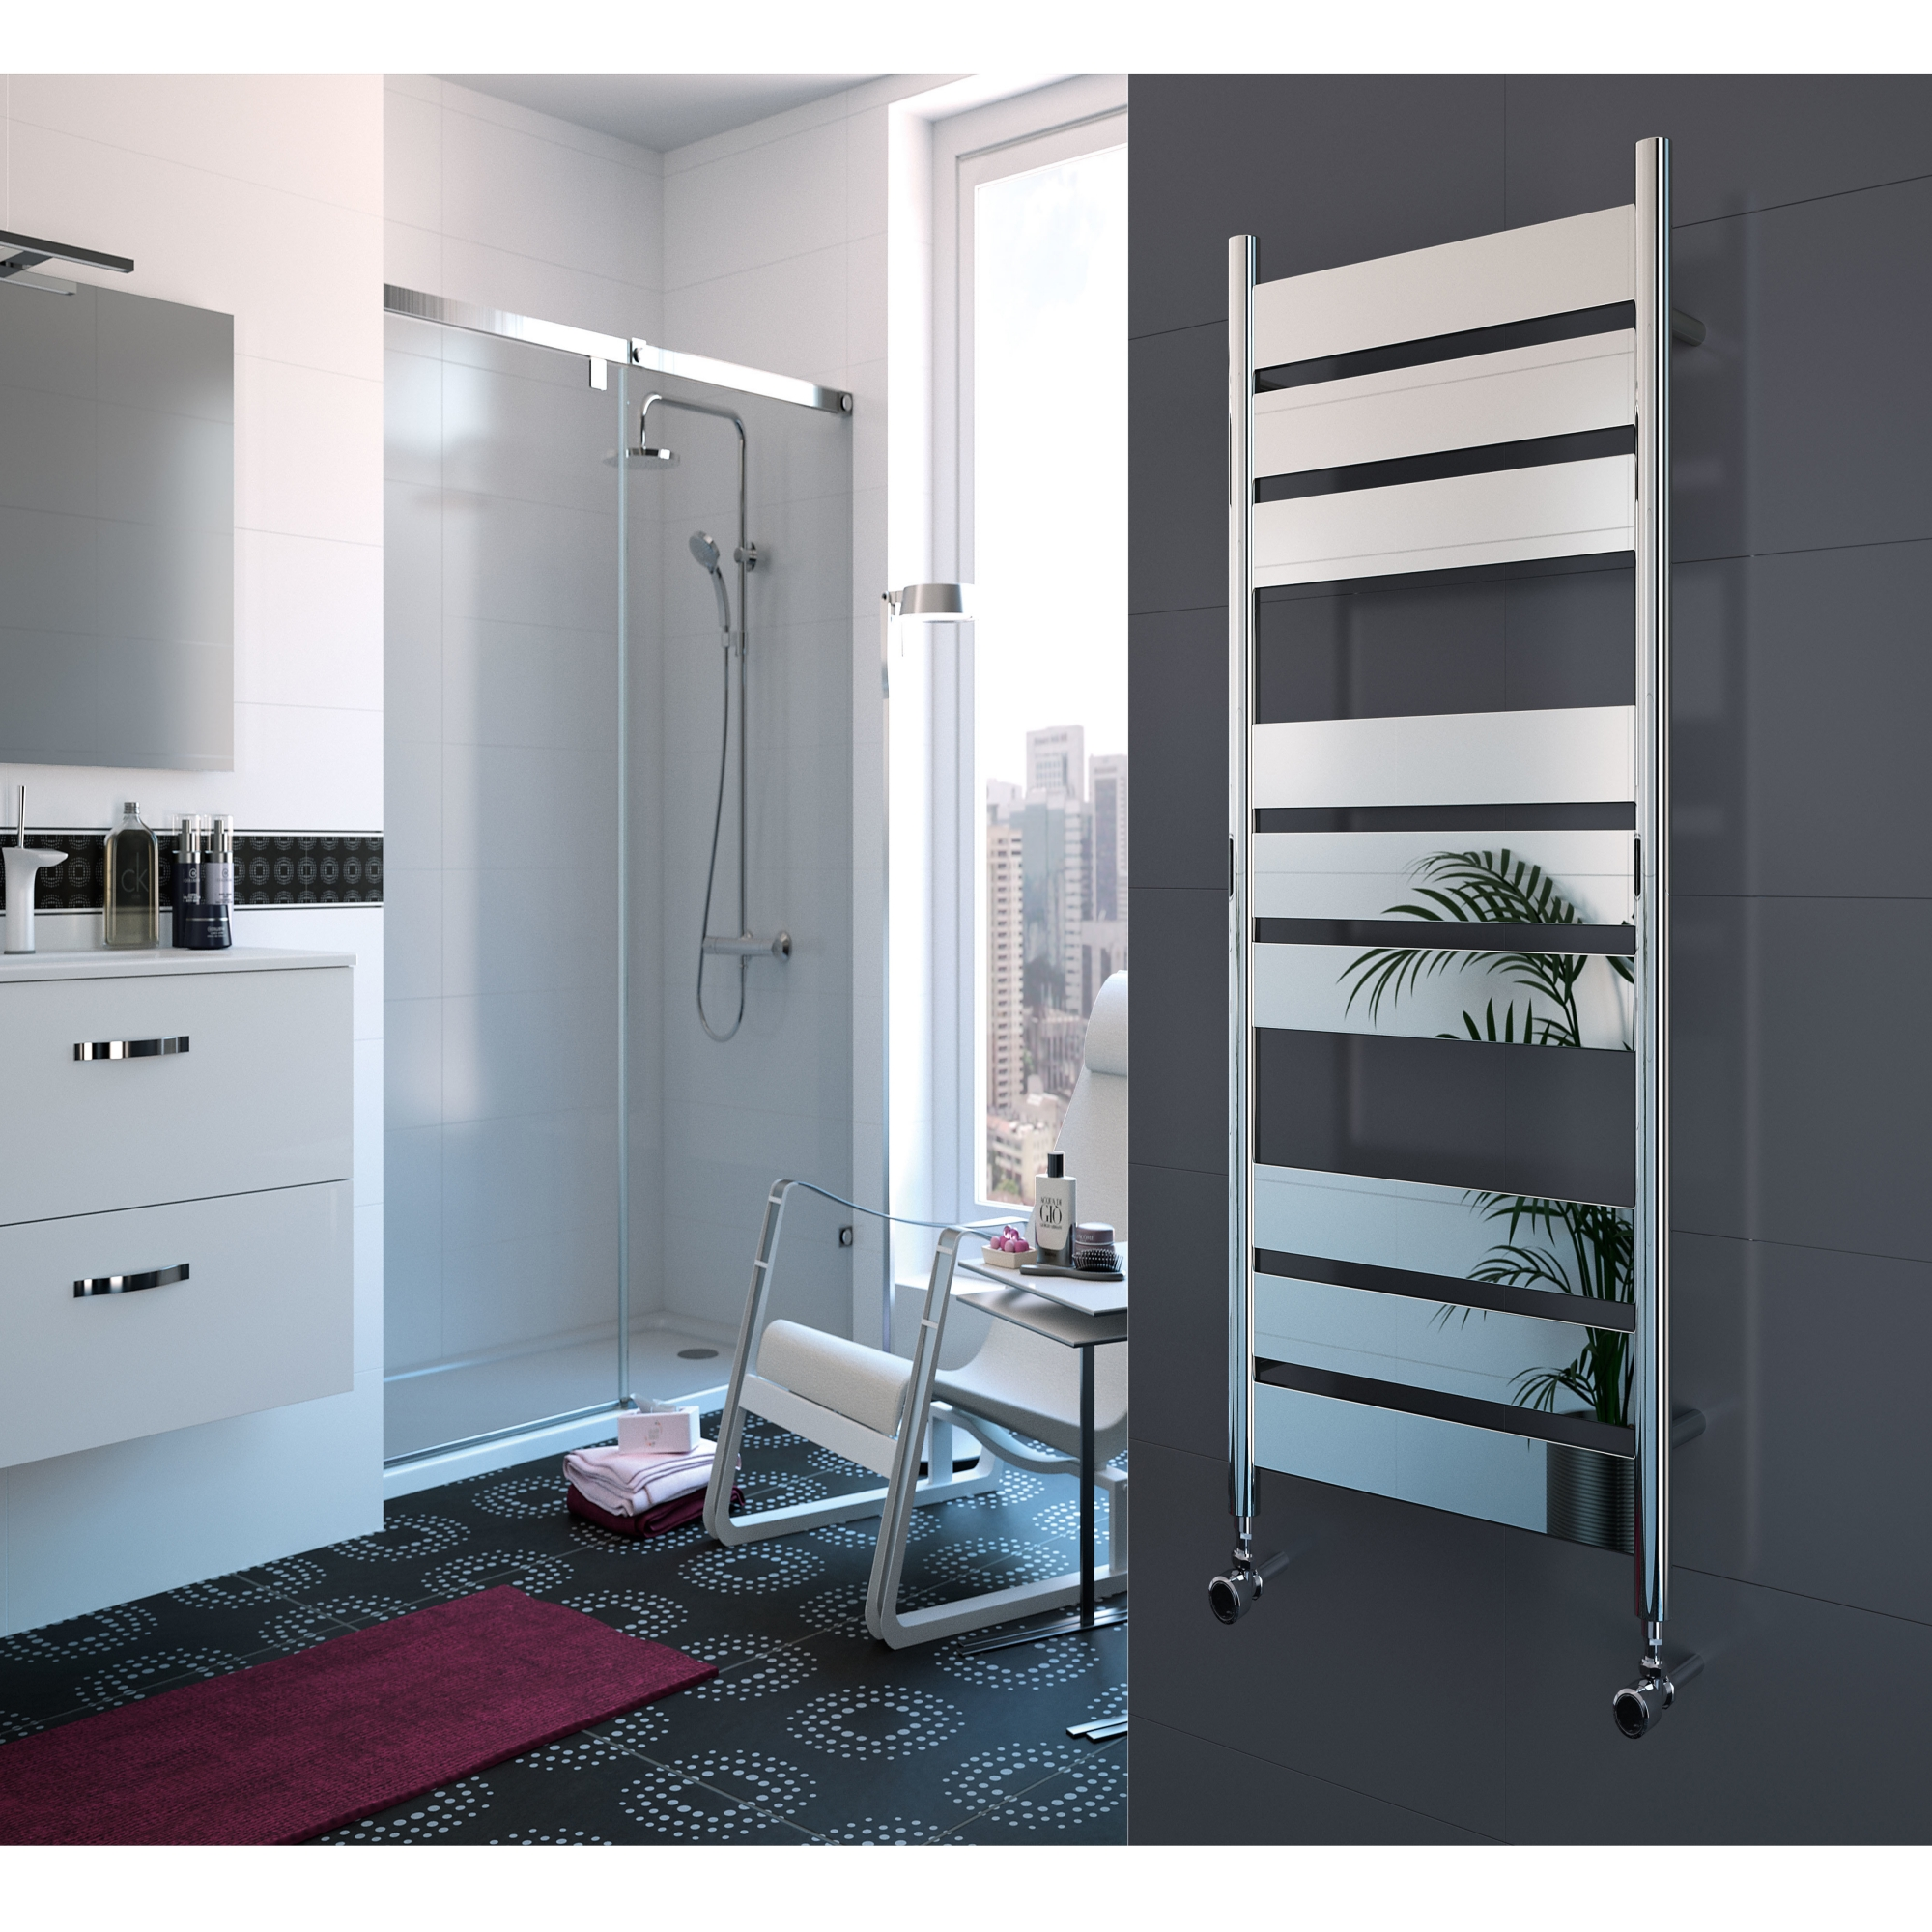 Radox Apollo Designer Heated Towel Rail 700mm H x 500mm W Chrome